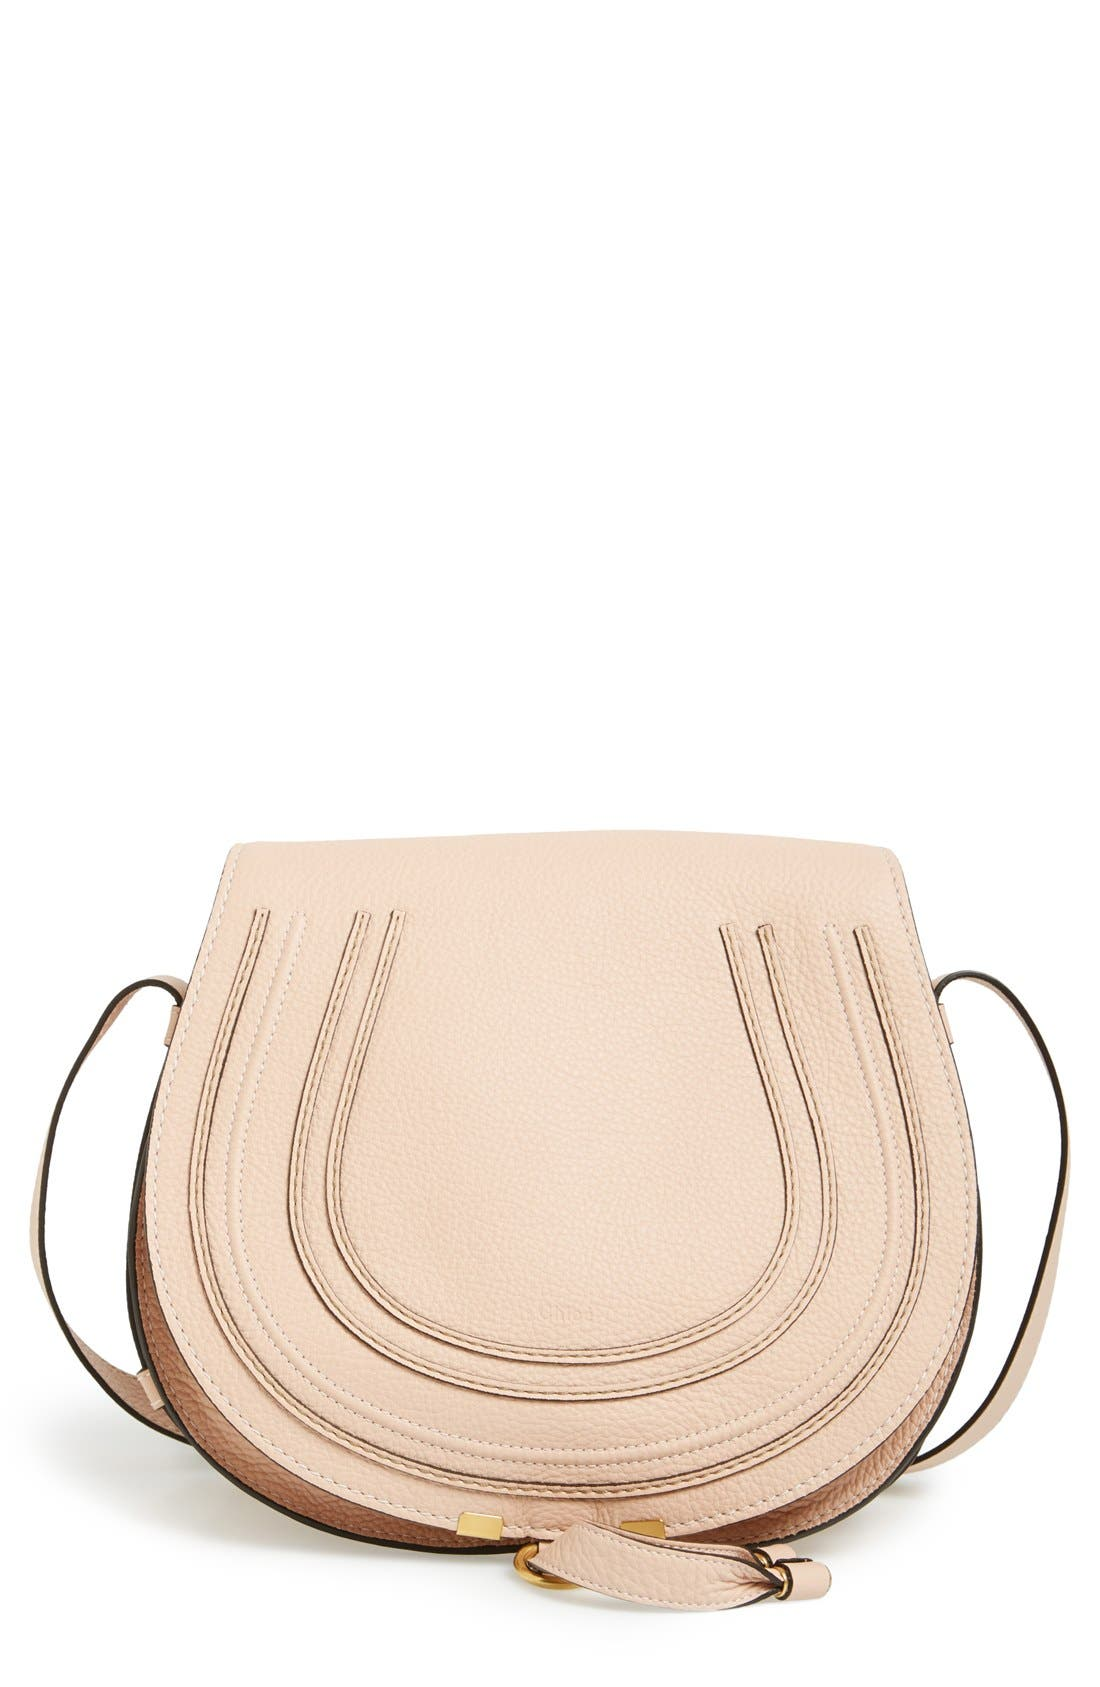 Chloé 'Marcie - Medium' Leather Crossbody Bag